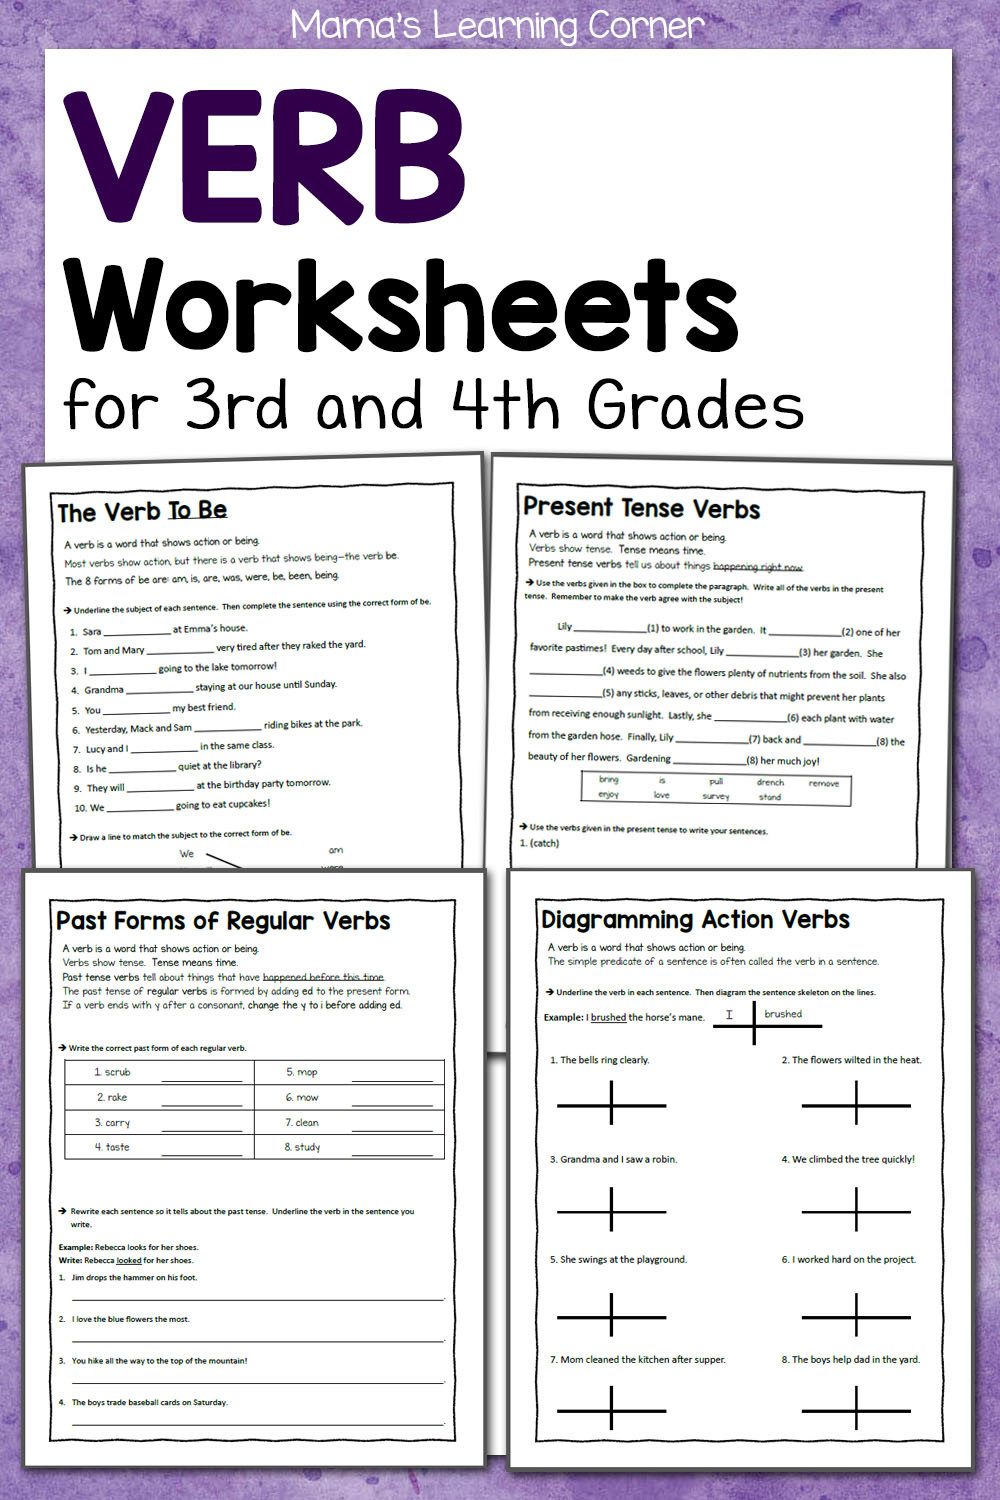 Word form Worksheets 4th Grade Verb Worksheets for 3rd and 4th Grades Mamas Learning Corner